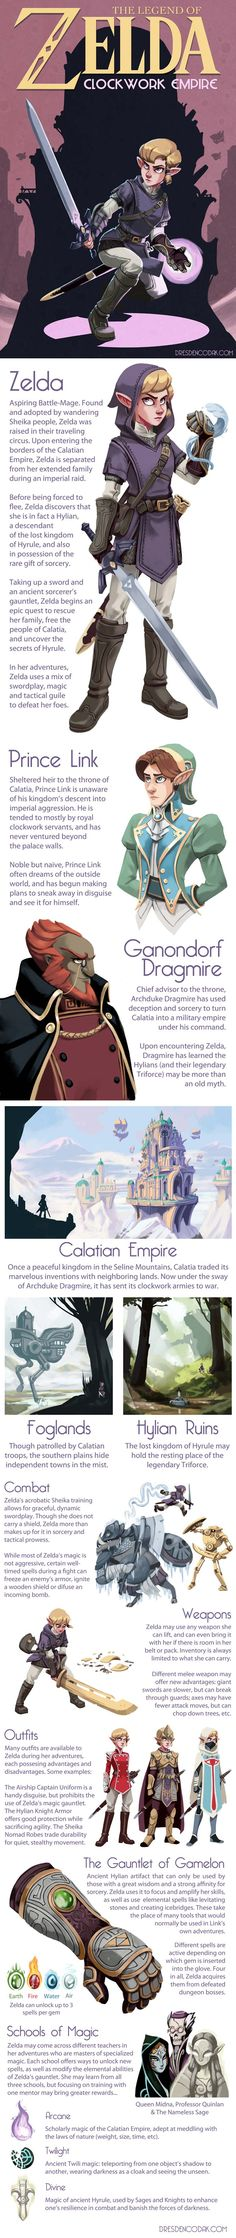 The Legend of Zelda: Clockwork Empire --- Interesting. It's a feminist take on the Zelda series. ITS ACTUALLY THE LEGEND OF ZELDA! (Not the Legend of Link :P ) I'd play it.